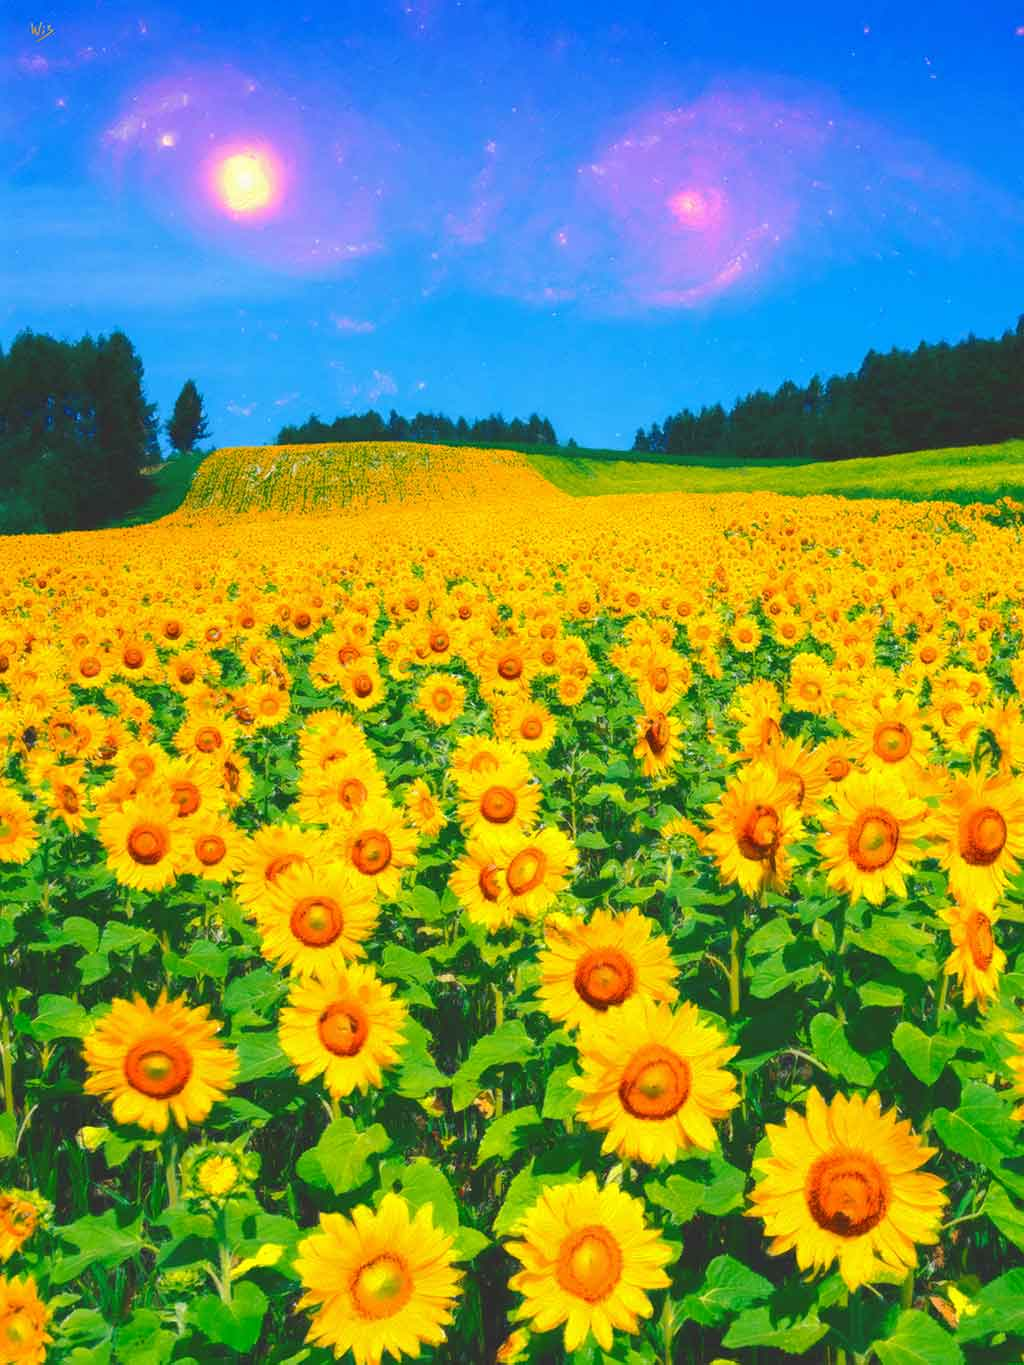 Sunflower Field Galaxies, digital painting on Art Canvas Print by Wieslaw Sadurski